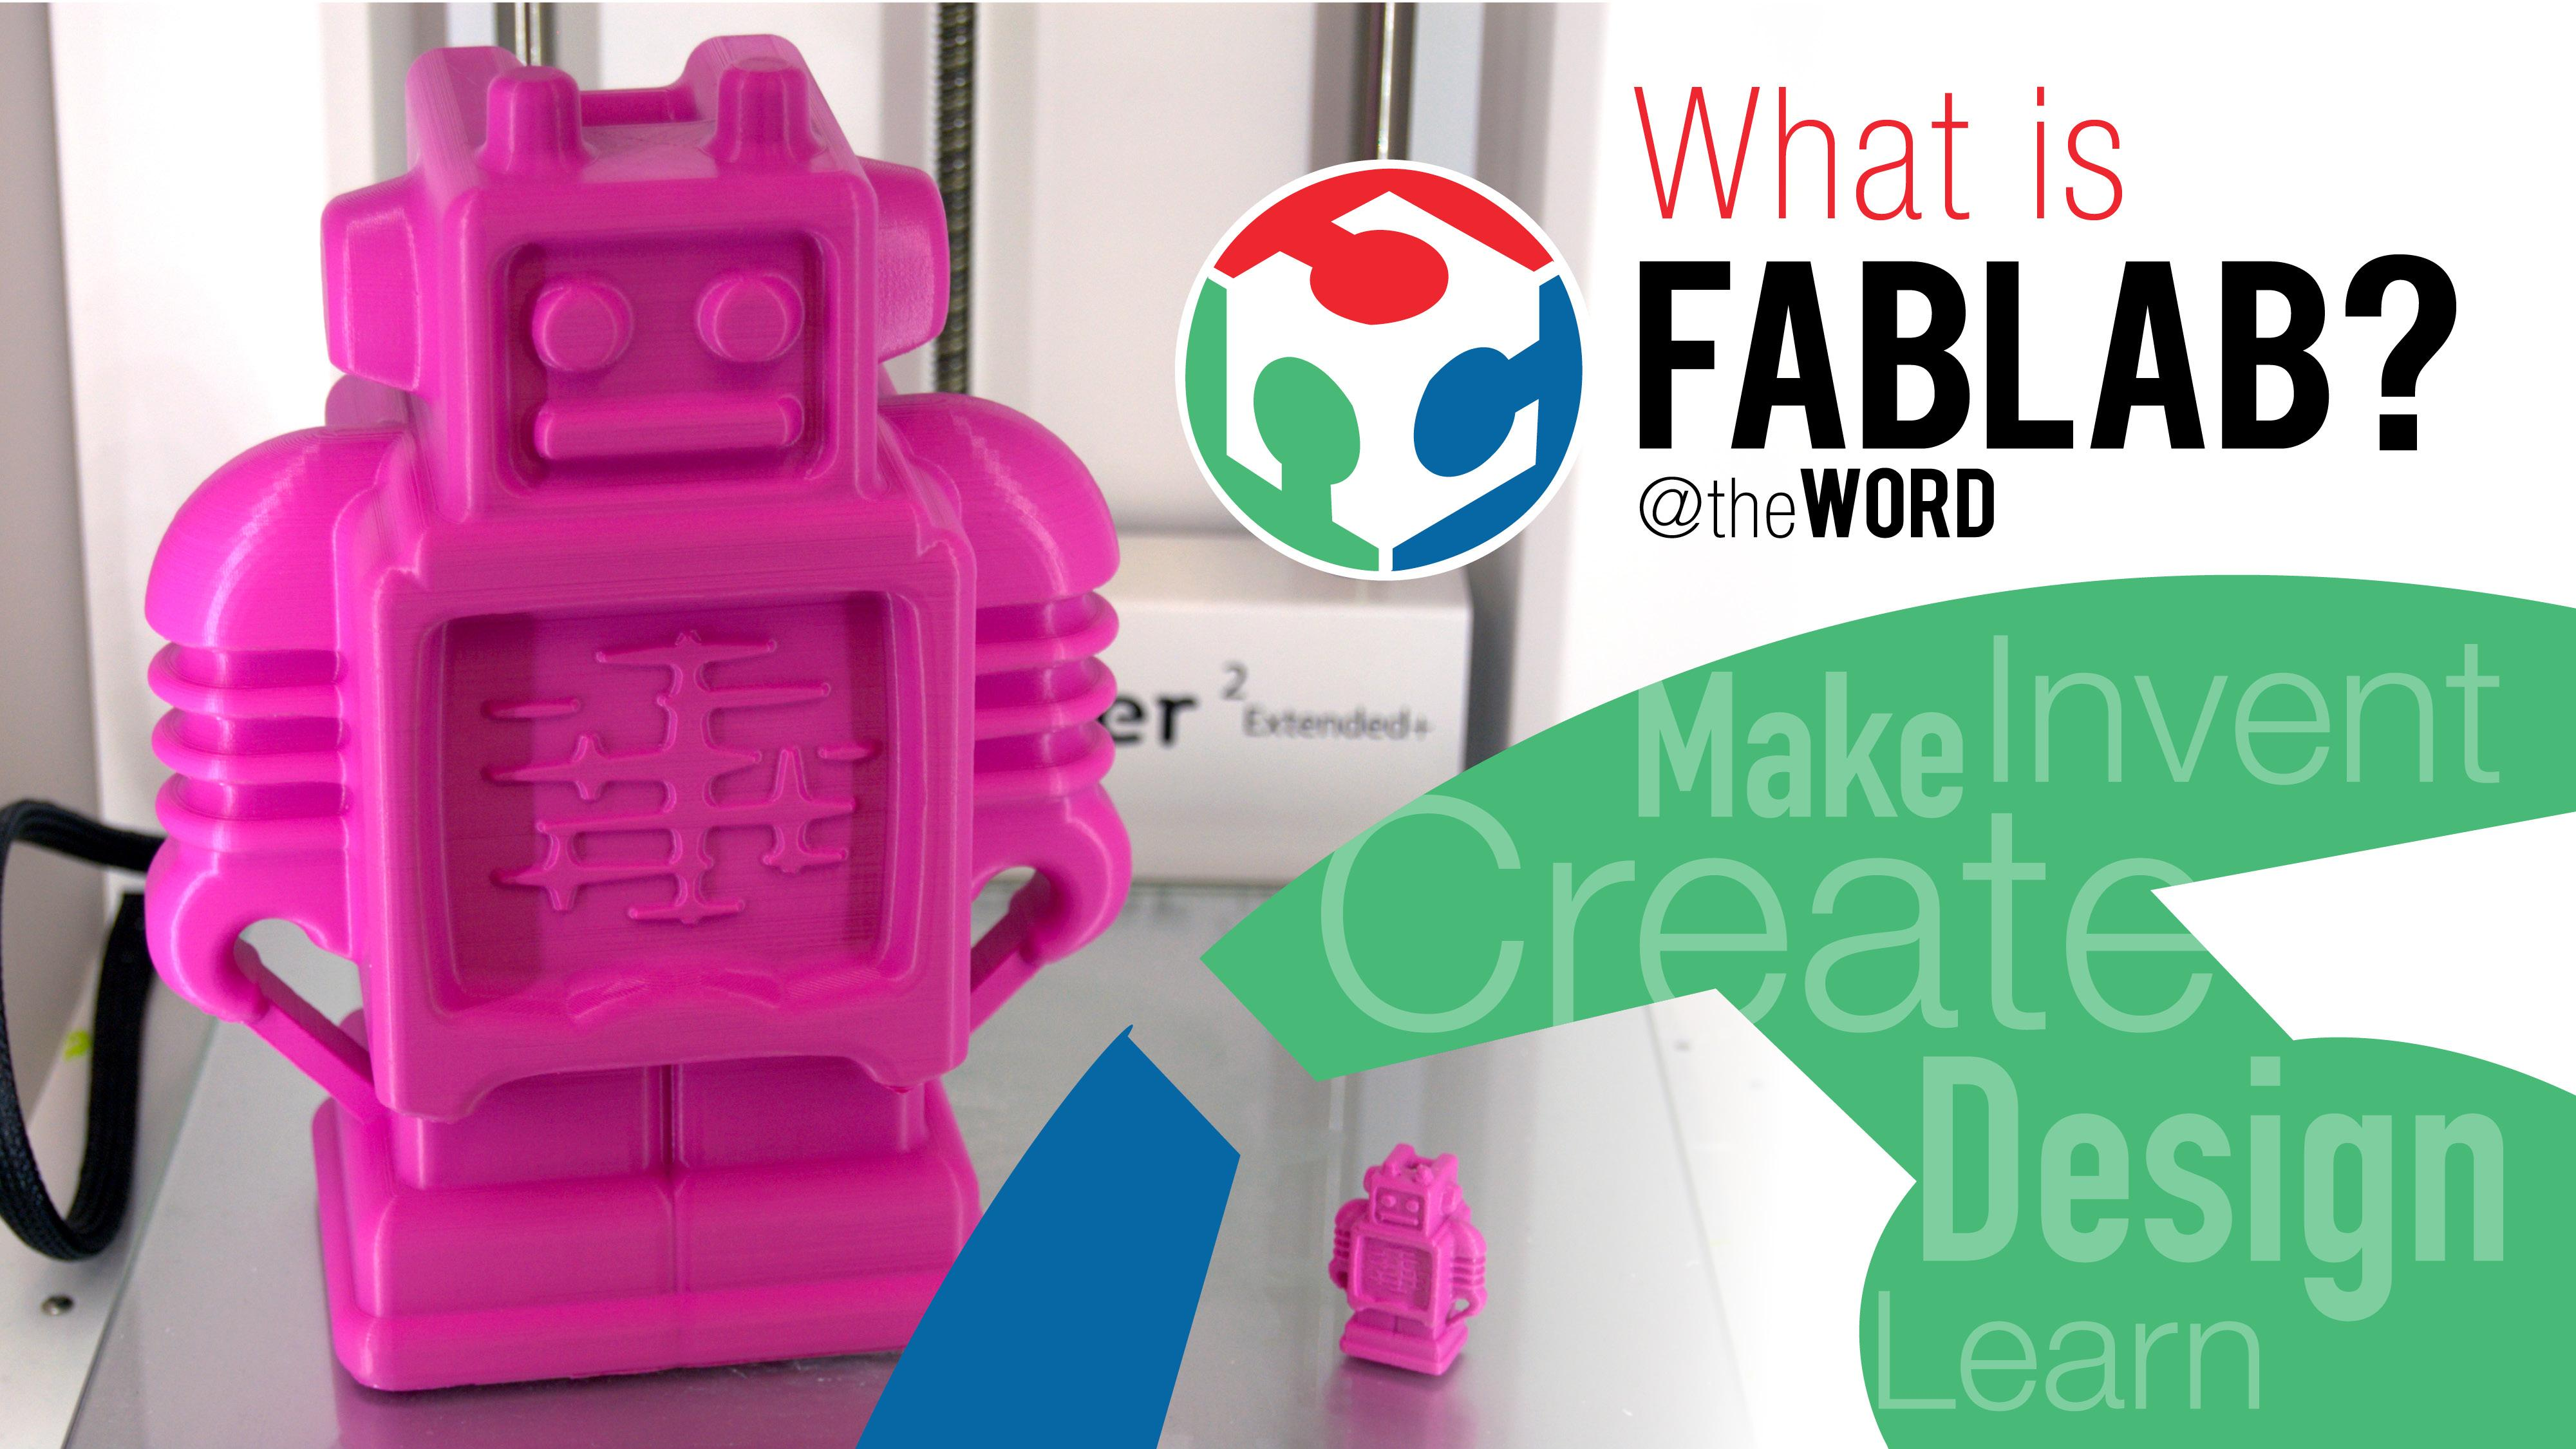 What is a FabLab?